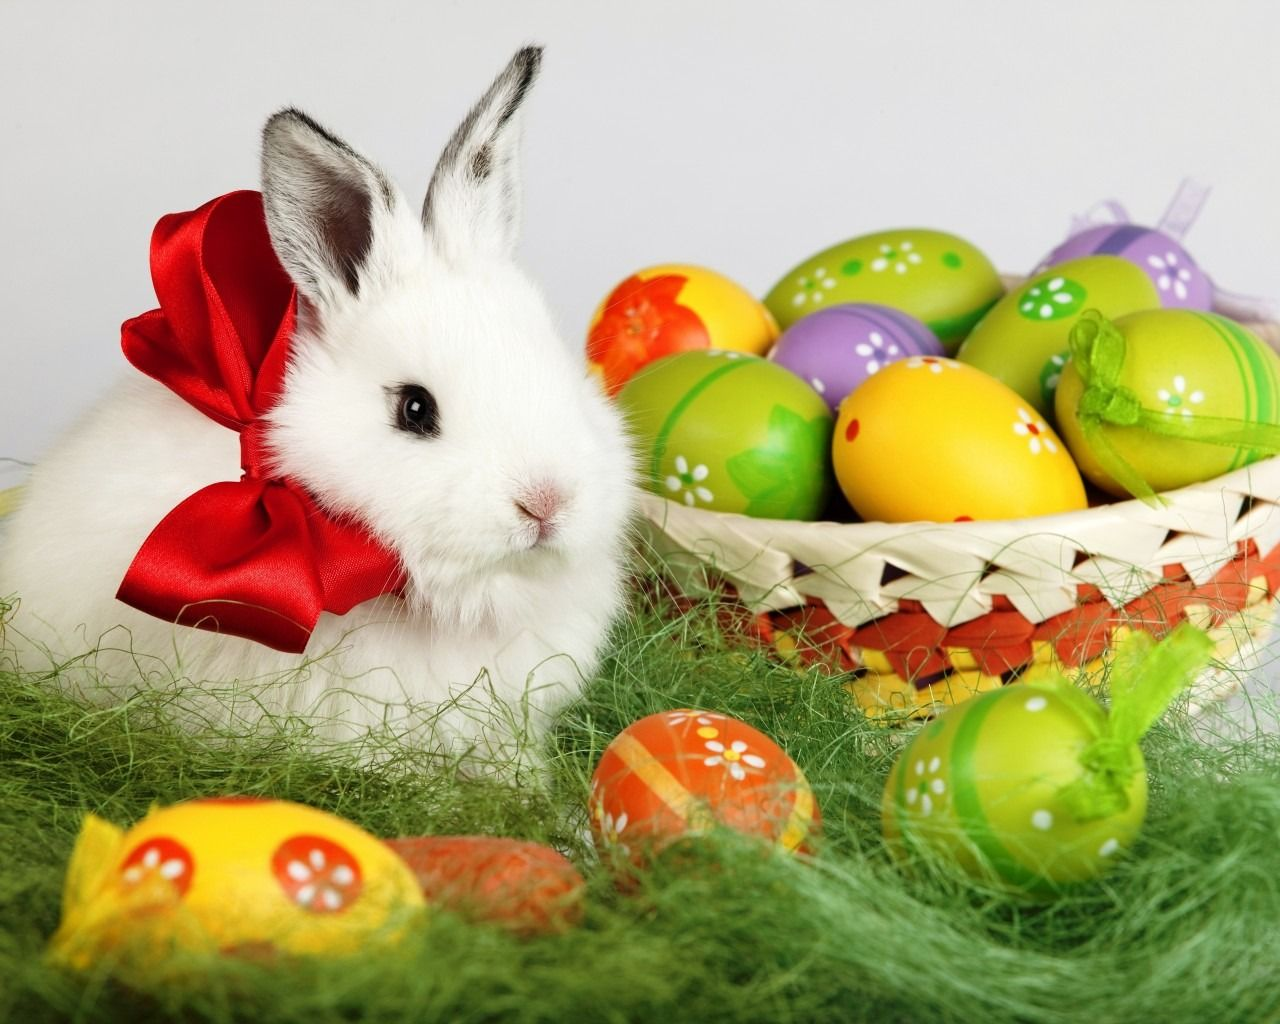 Cute Easter Bunny Wallpaper Easter wallpaper, Happy